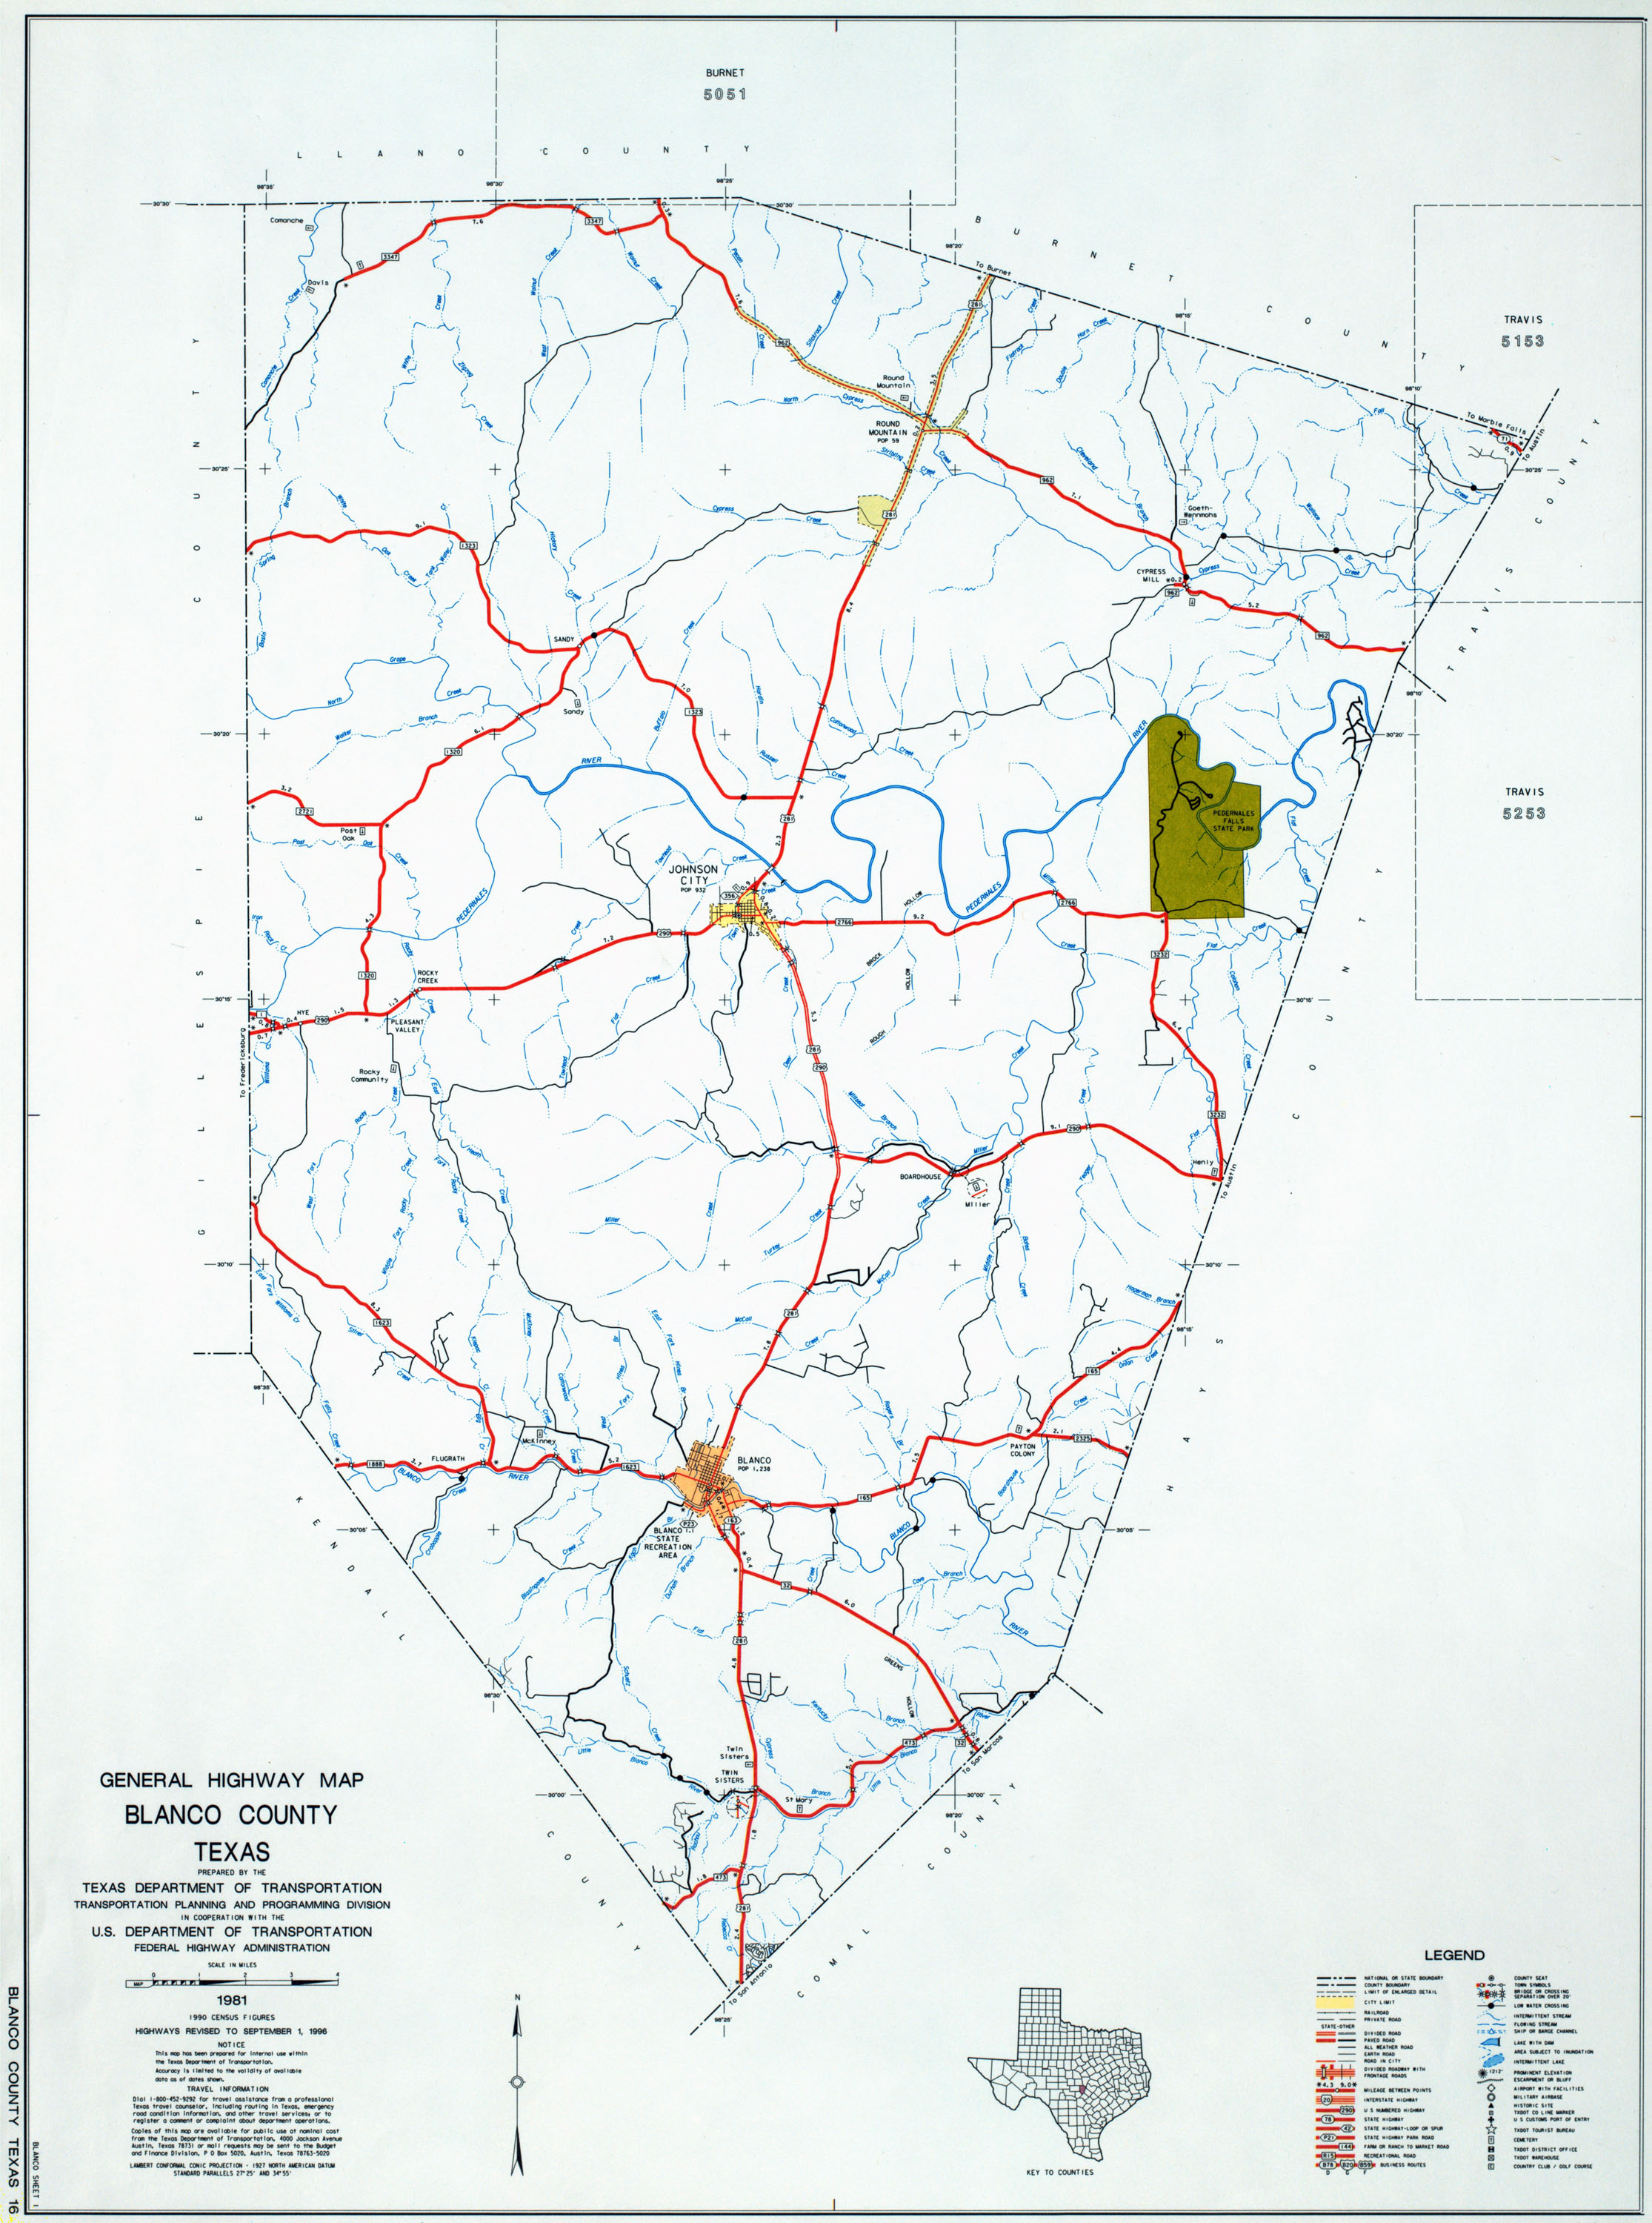 Texas County Highway Maps Browse PerryCastañeda Map Collection - Texas county map with cities